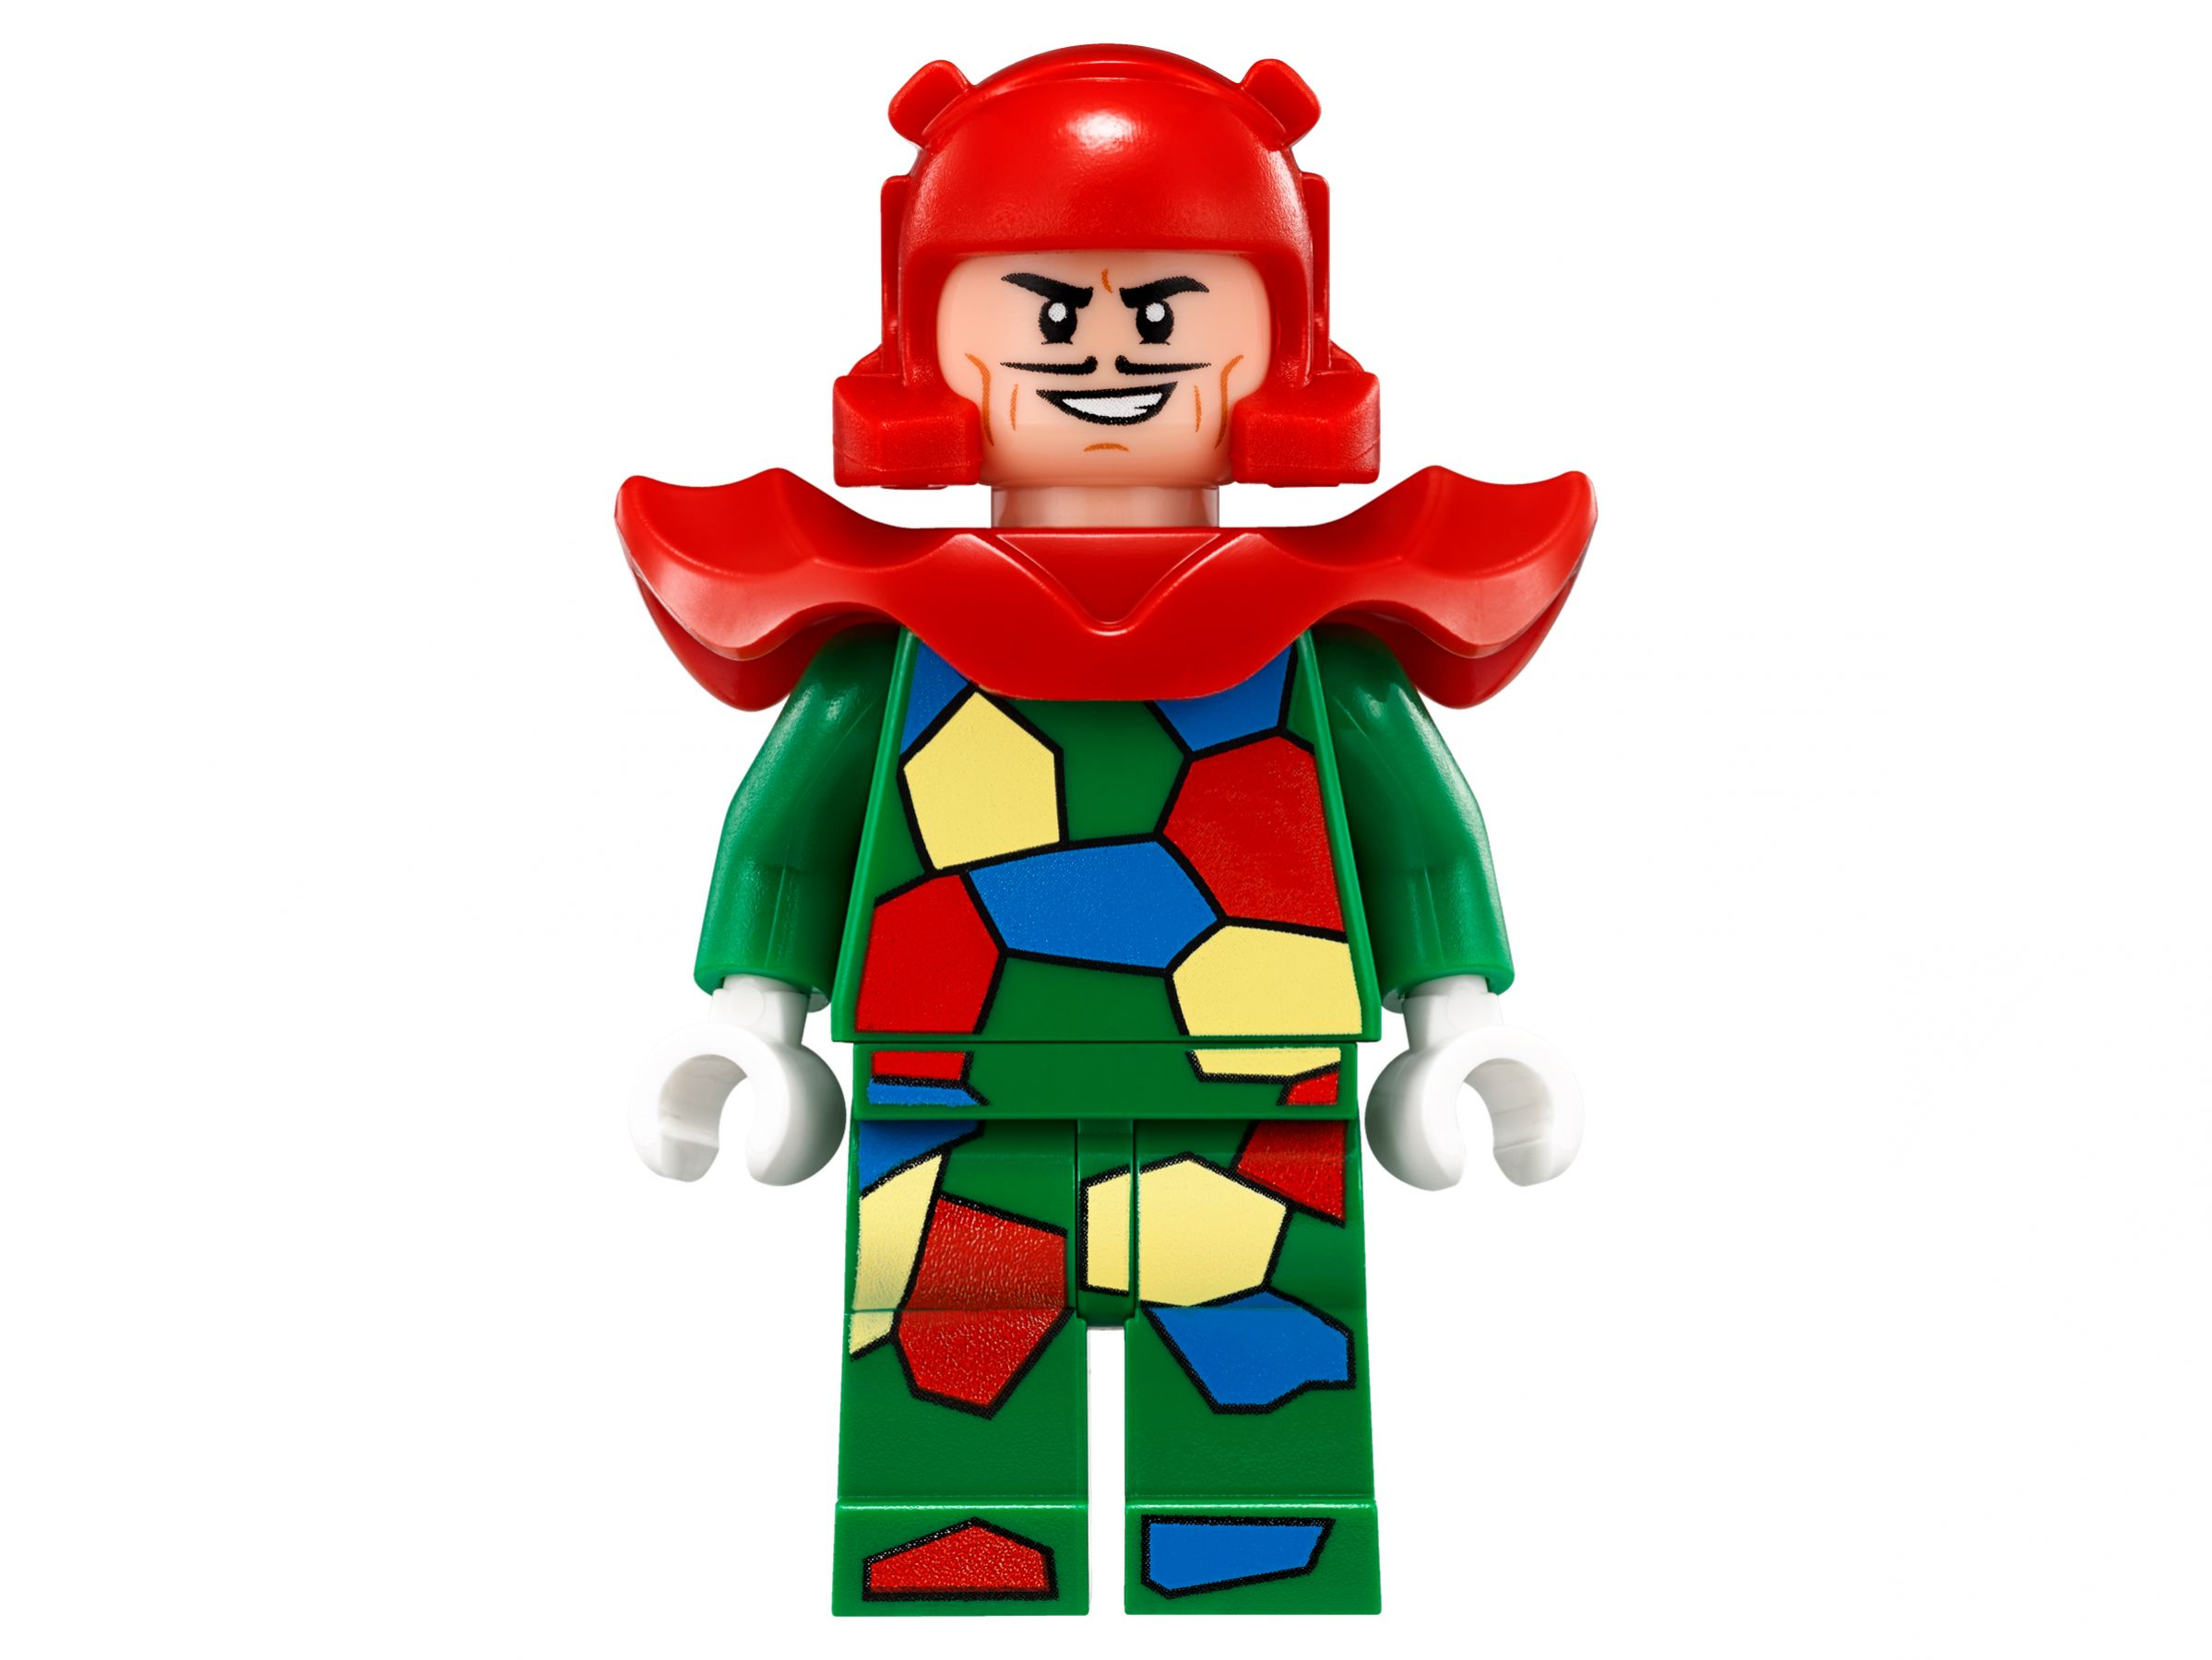 LEGO The LEGO Batman Movie 70921 Harley Quinn Kanonenkugelattacke LEGO_70921_alt8.jpg